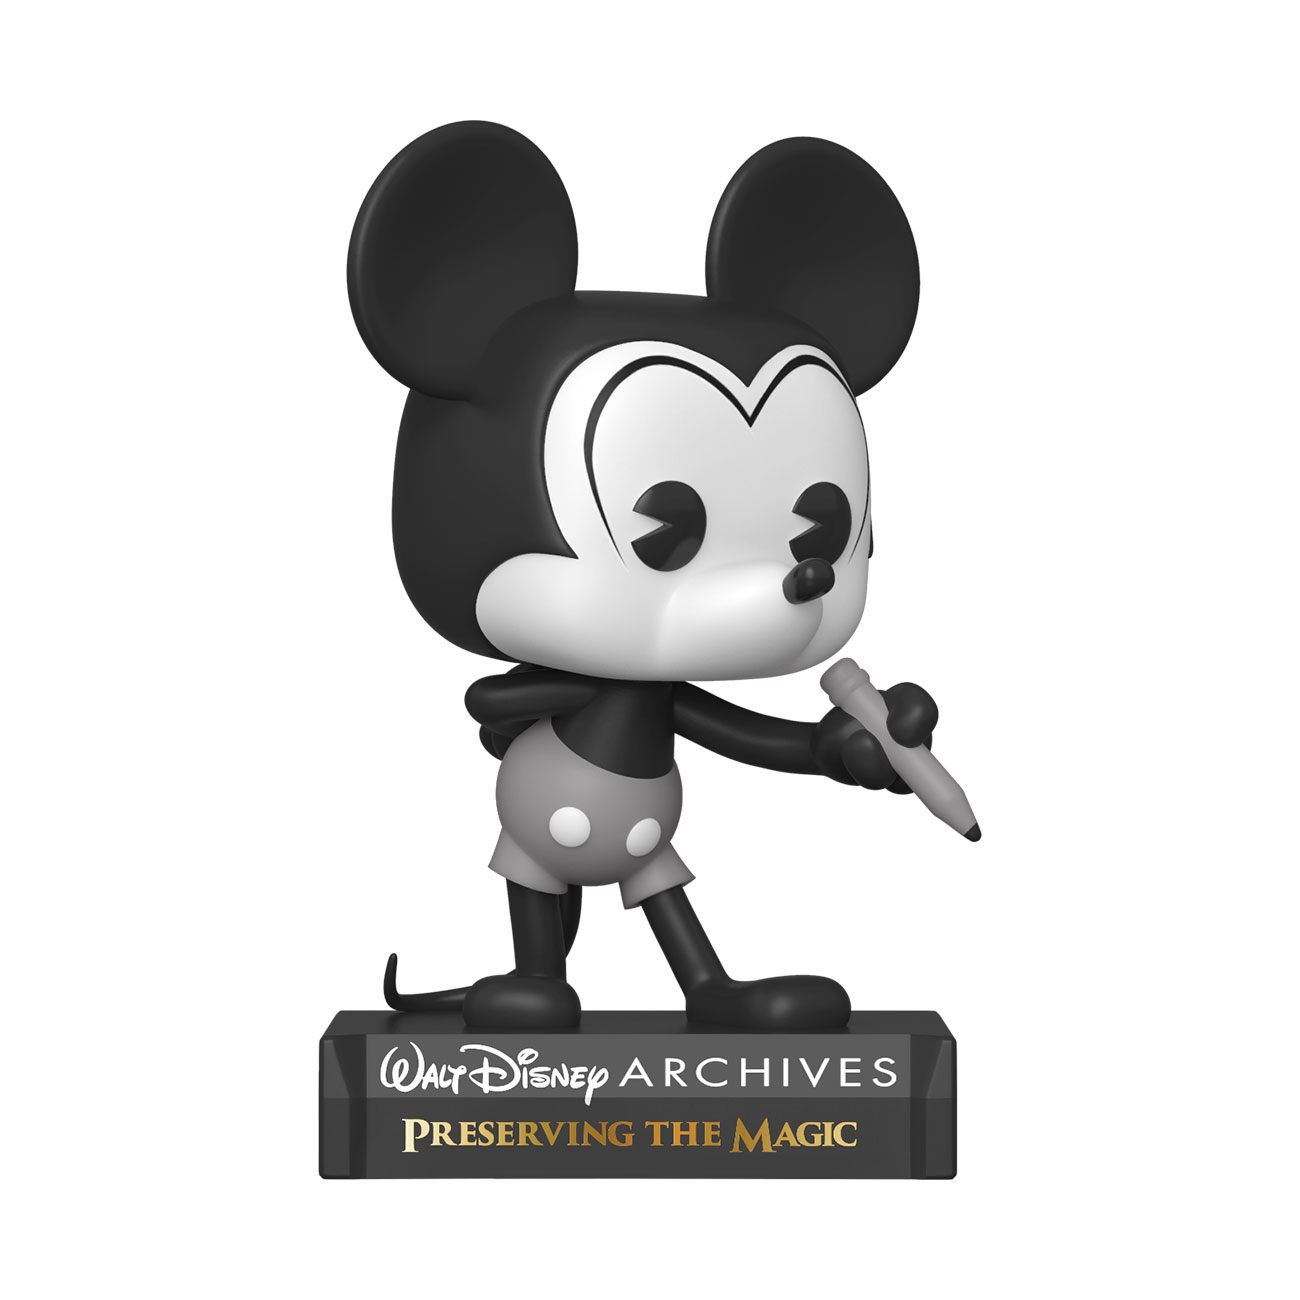 Funko Pop Disney: Archivos - Mickey Mouse Blanco y Negro